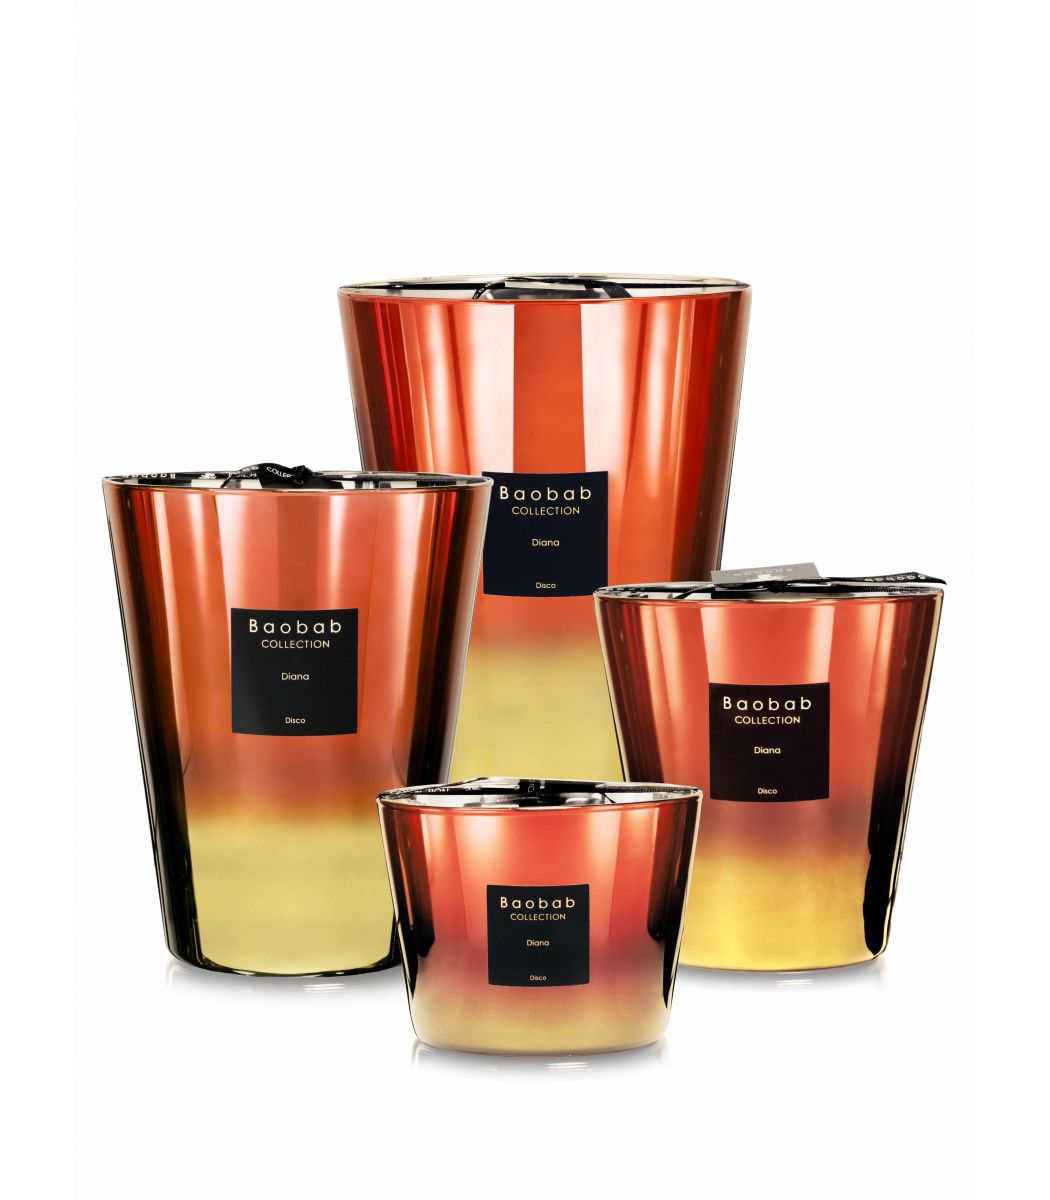 Baobab Collection lanza su edición limitada de velas 'Disco'